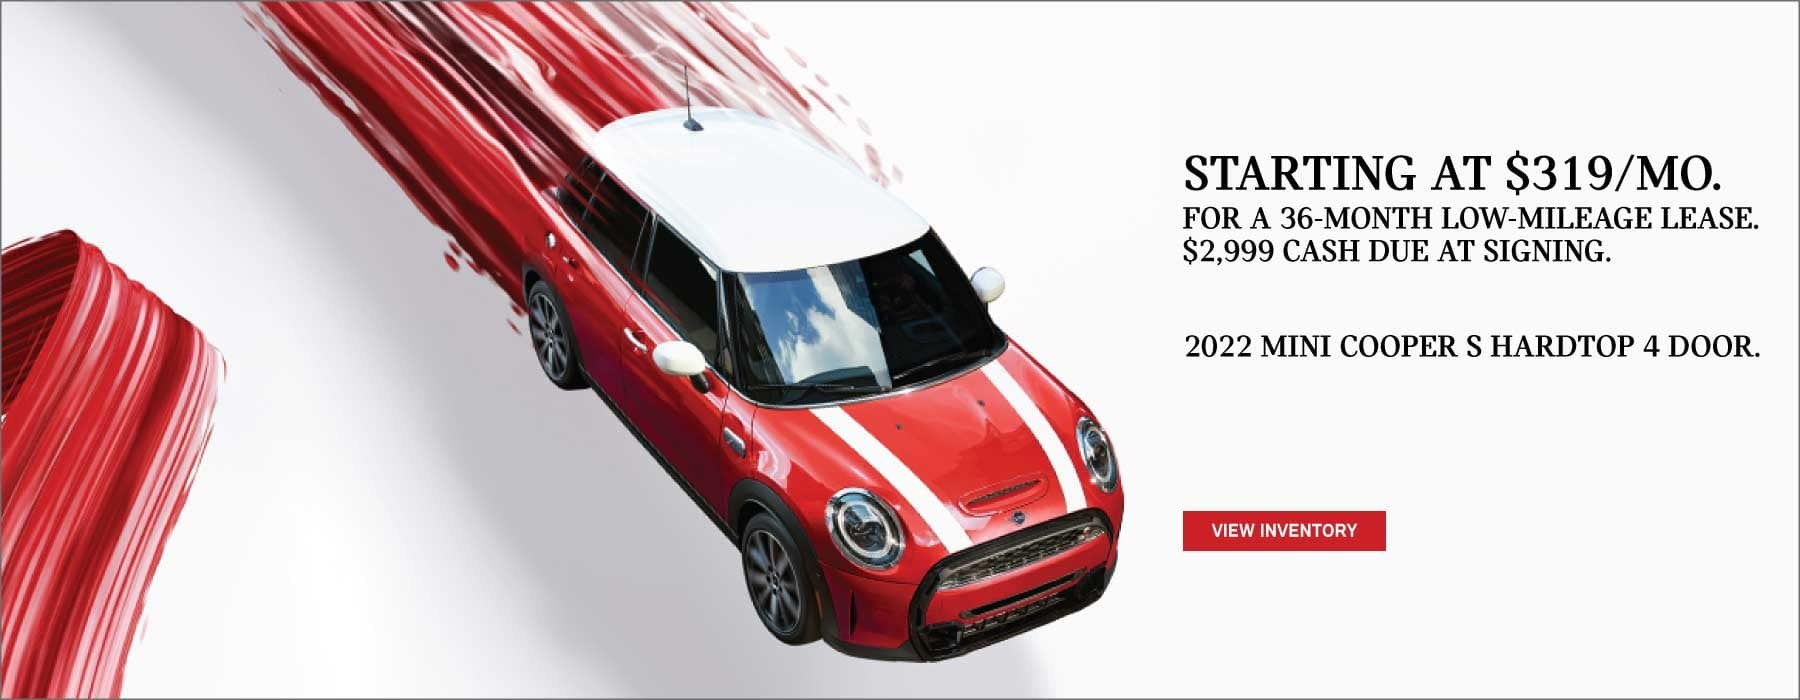 Lease a 2022 MINI Cooper S Hardtop 4 Door starting at $319/ month for a 36-month low-mileage lease. Valid through 08/02/21. Click to view inventory. See dealer for full details. Image shows a red 2022 MINI Cooper S Hardtop 4 Door floating in red paint stripes.